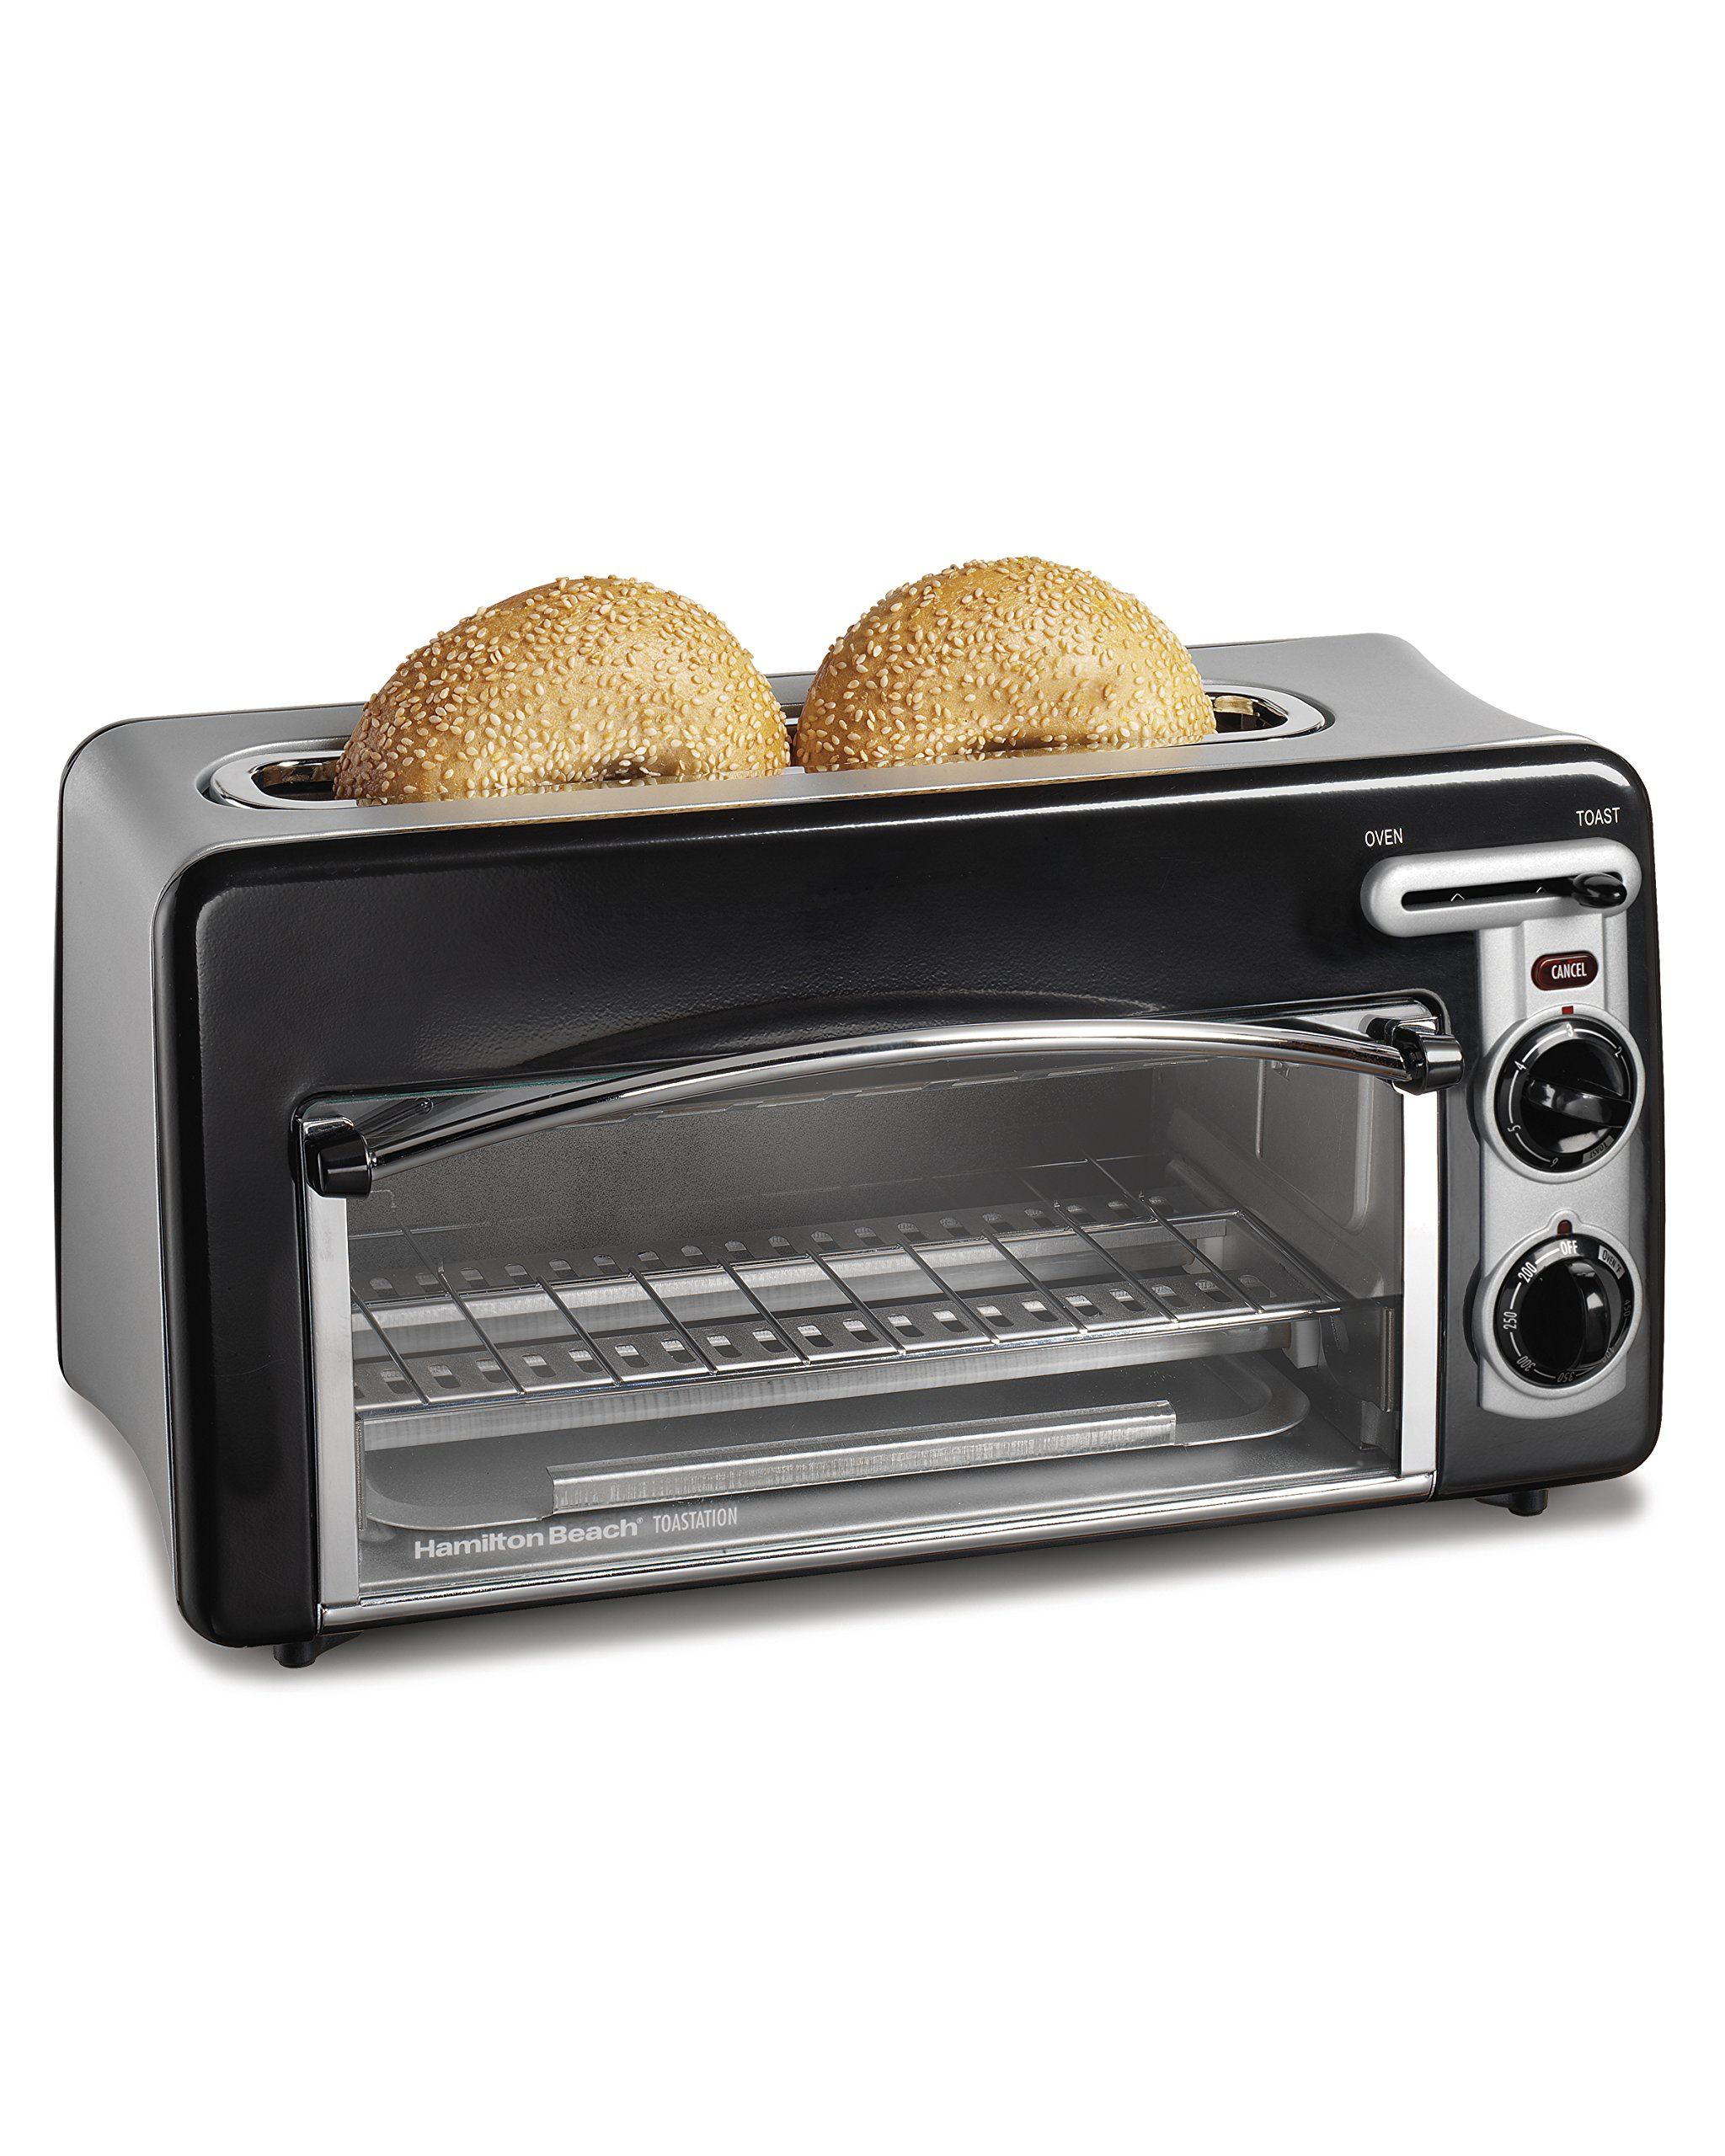 Hamilton Beach Toastation Oven with 2-Slice Toaster Combo, Ideal for Pizza, Chicken Nuggets, Fries and More (22708), Black by Hamilton Beach